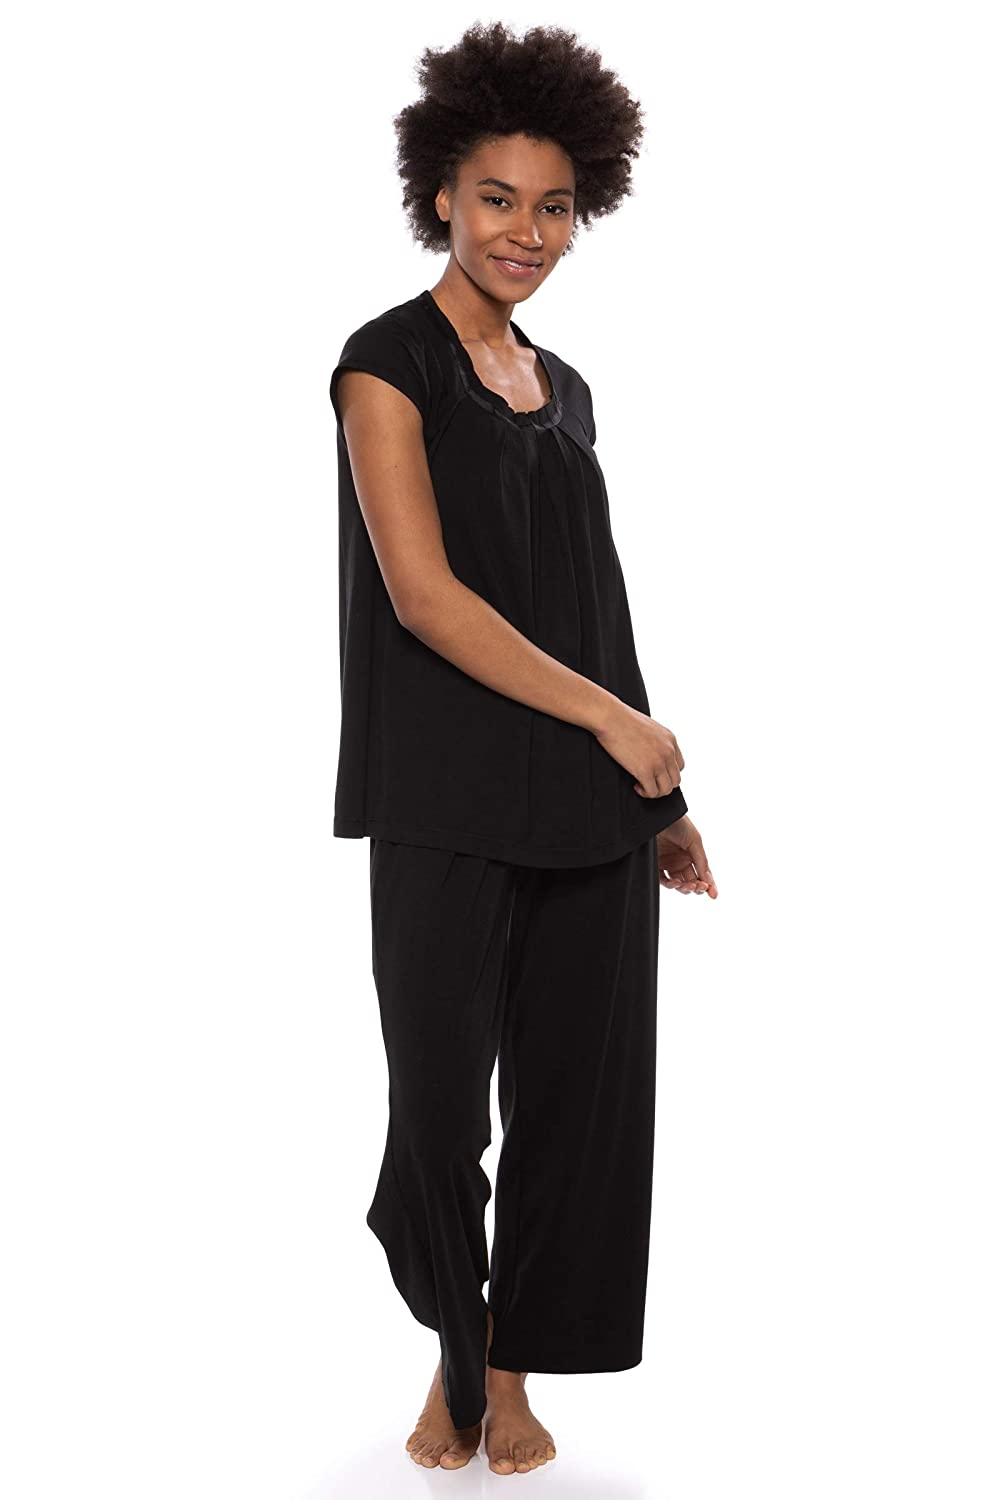 230a2f9cf4 Women s Pajamas in Bamboo Viscose (Bamboo Bliss) Cozy Sleepwear Set by  Texere